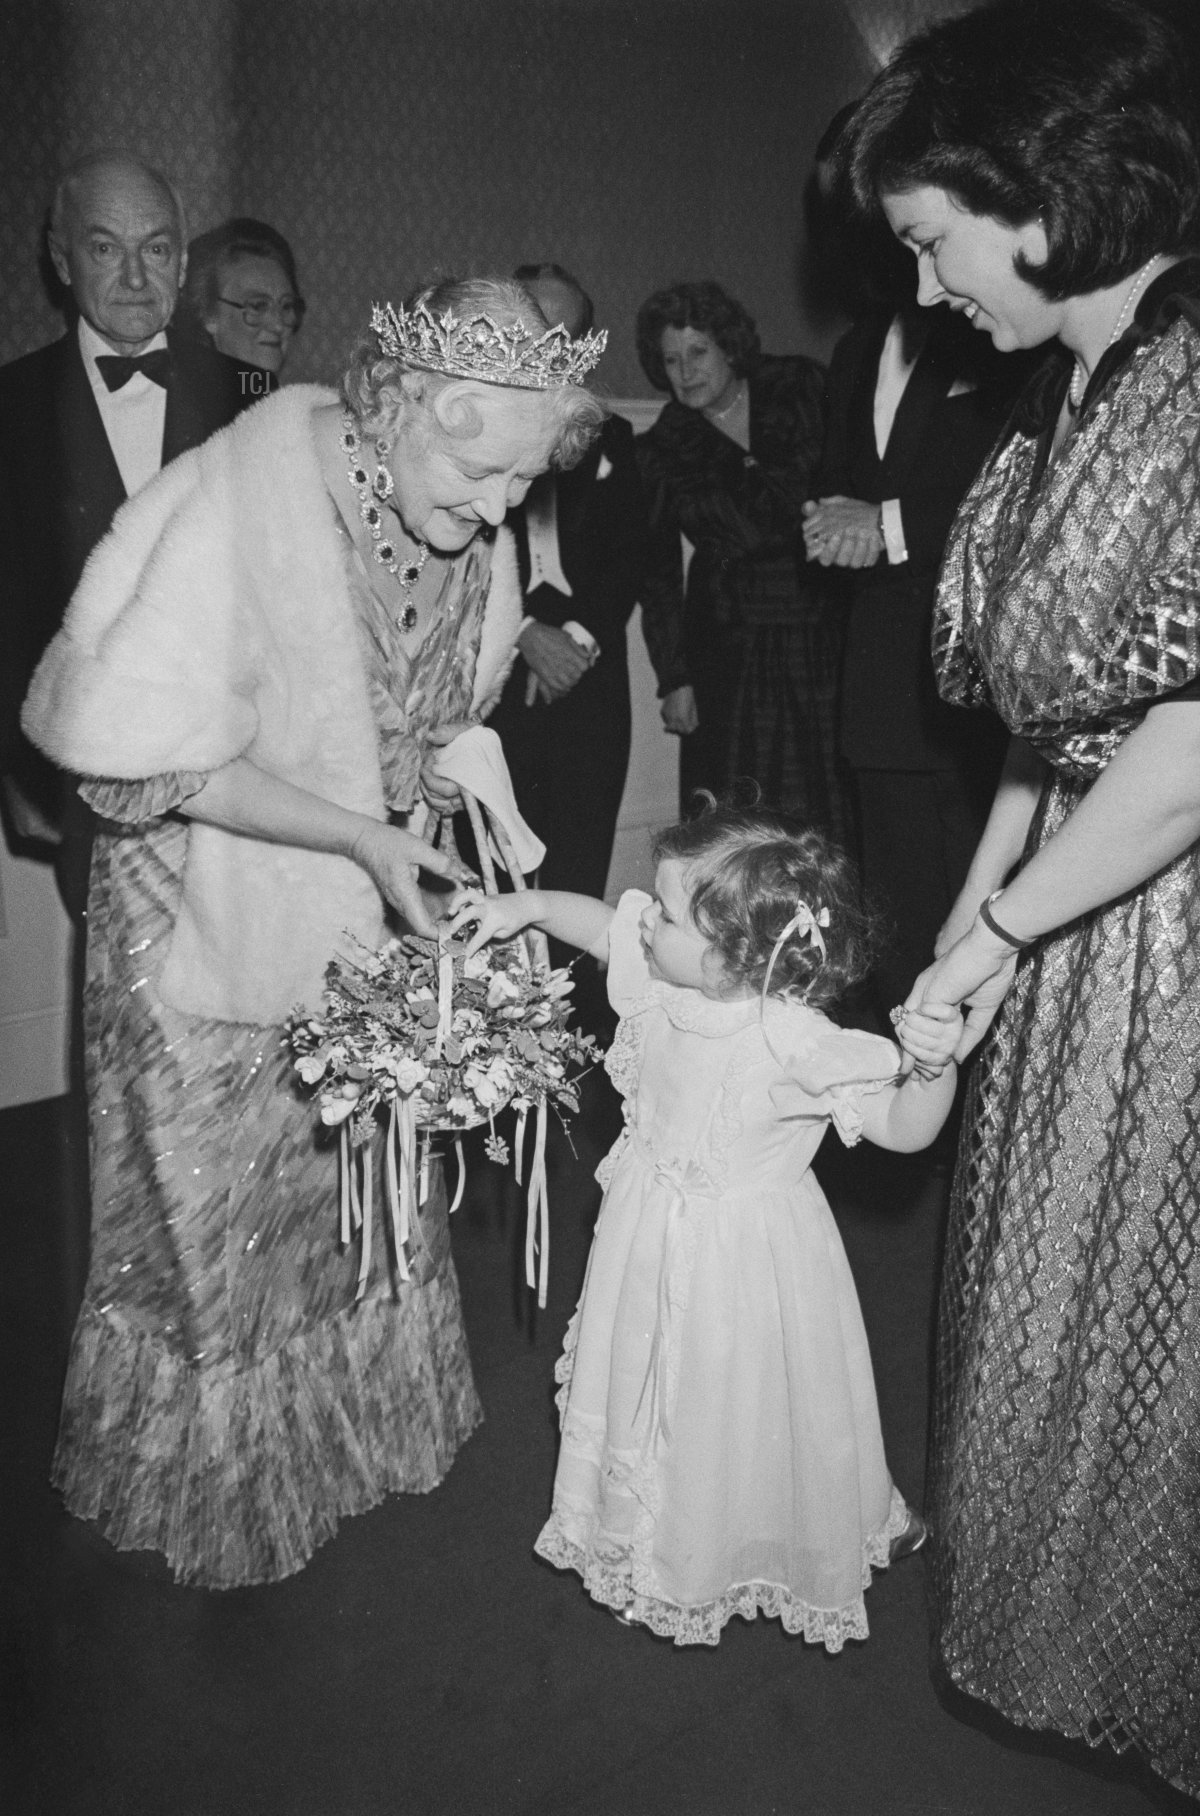 Queen Elizabeth The Queen Mother is greeted by a young girl who presents the royal with a basket of flowers at the royal film premiere of 'A Passage To India', at the Odeon Leicester Square in London, England, 1st March 1985